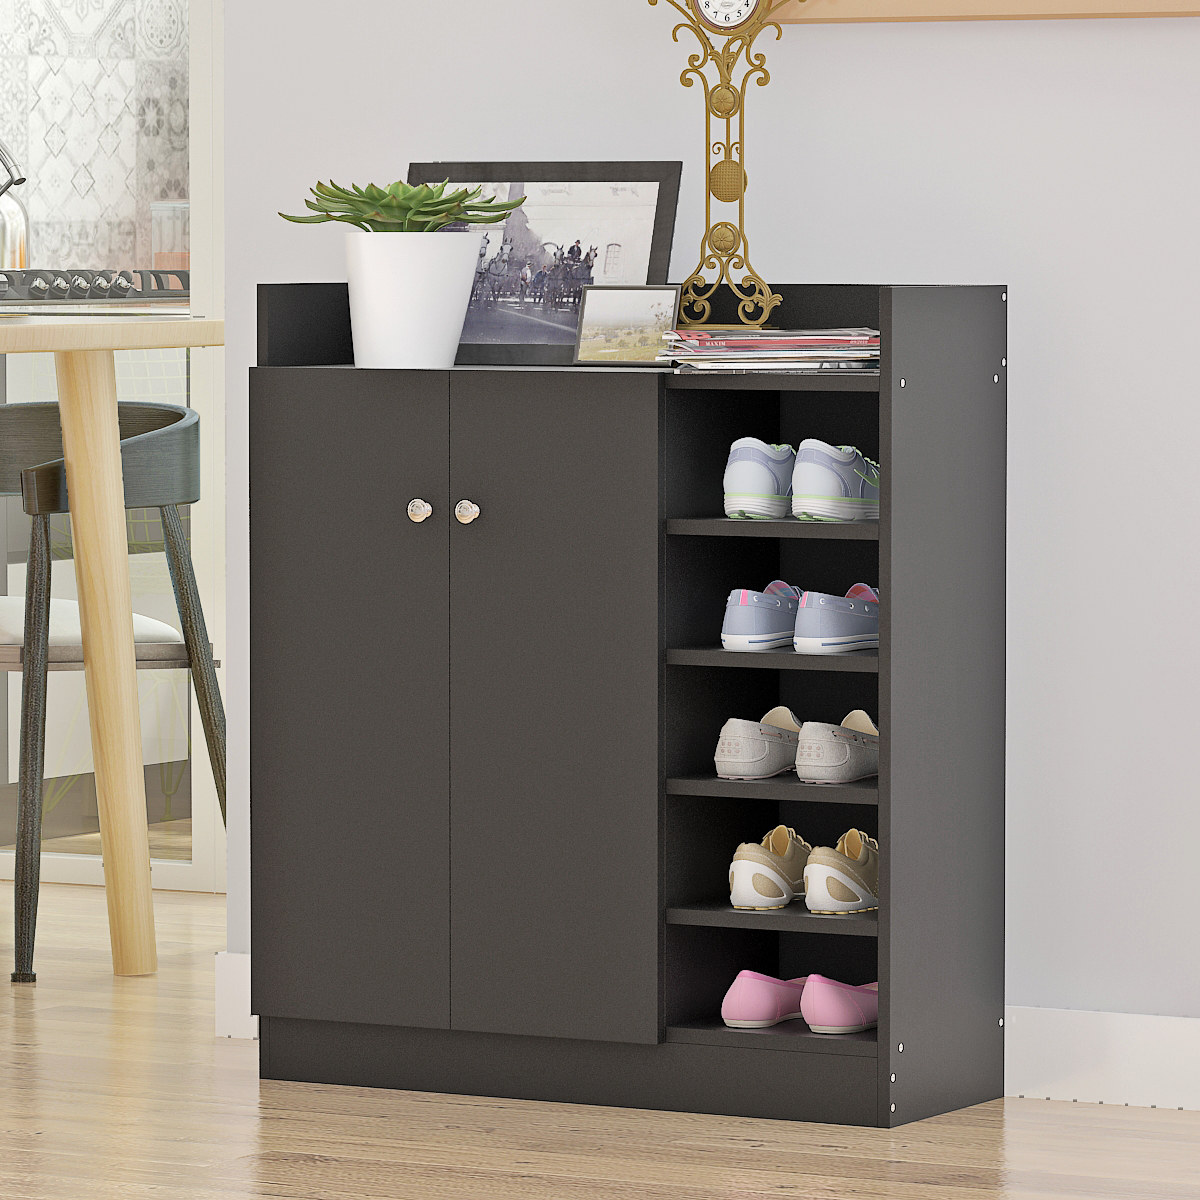 Home Furnitures Shoe Storage Cupboard Cabinet Rack Four Adjustable Shelves Convenience Shoes Storage